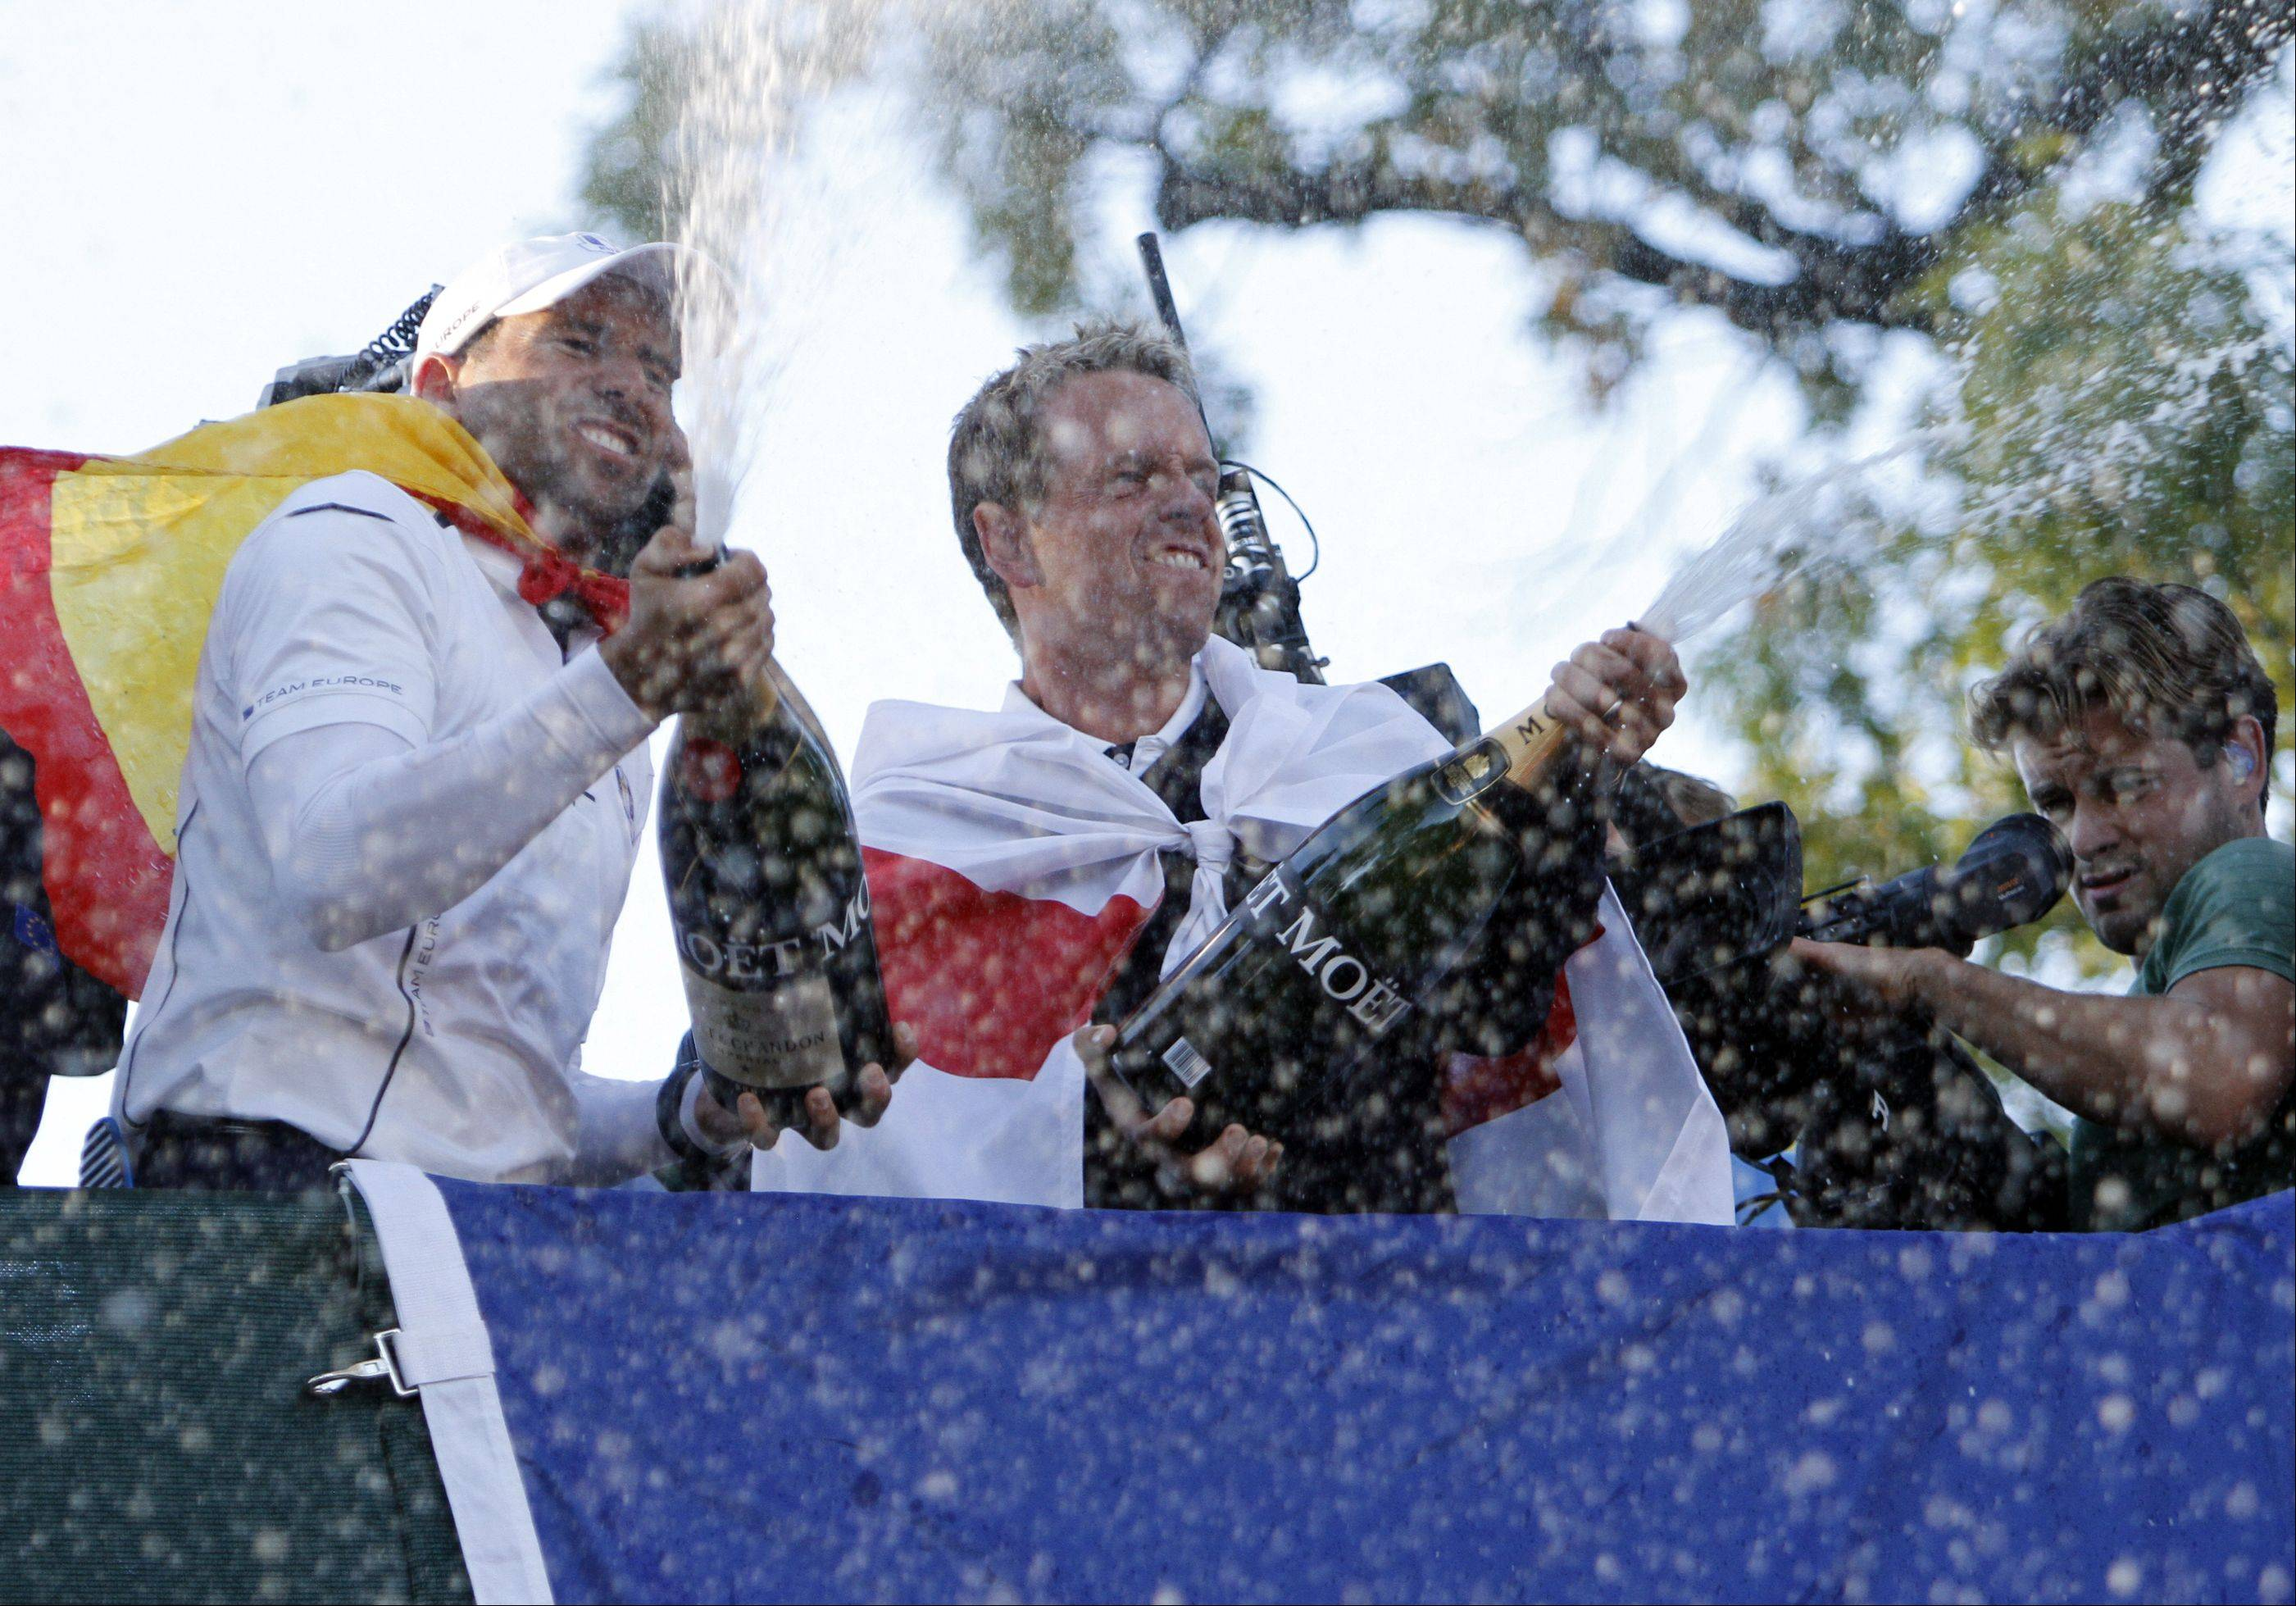 Sergio Garcia, left, and Luke Donald celebrate team Europe's win by spraying champagne on Sunday during the final day of the 2012 Ryder Cup at Medinah Country Club.